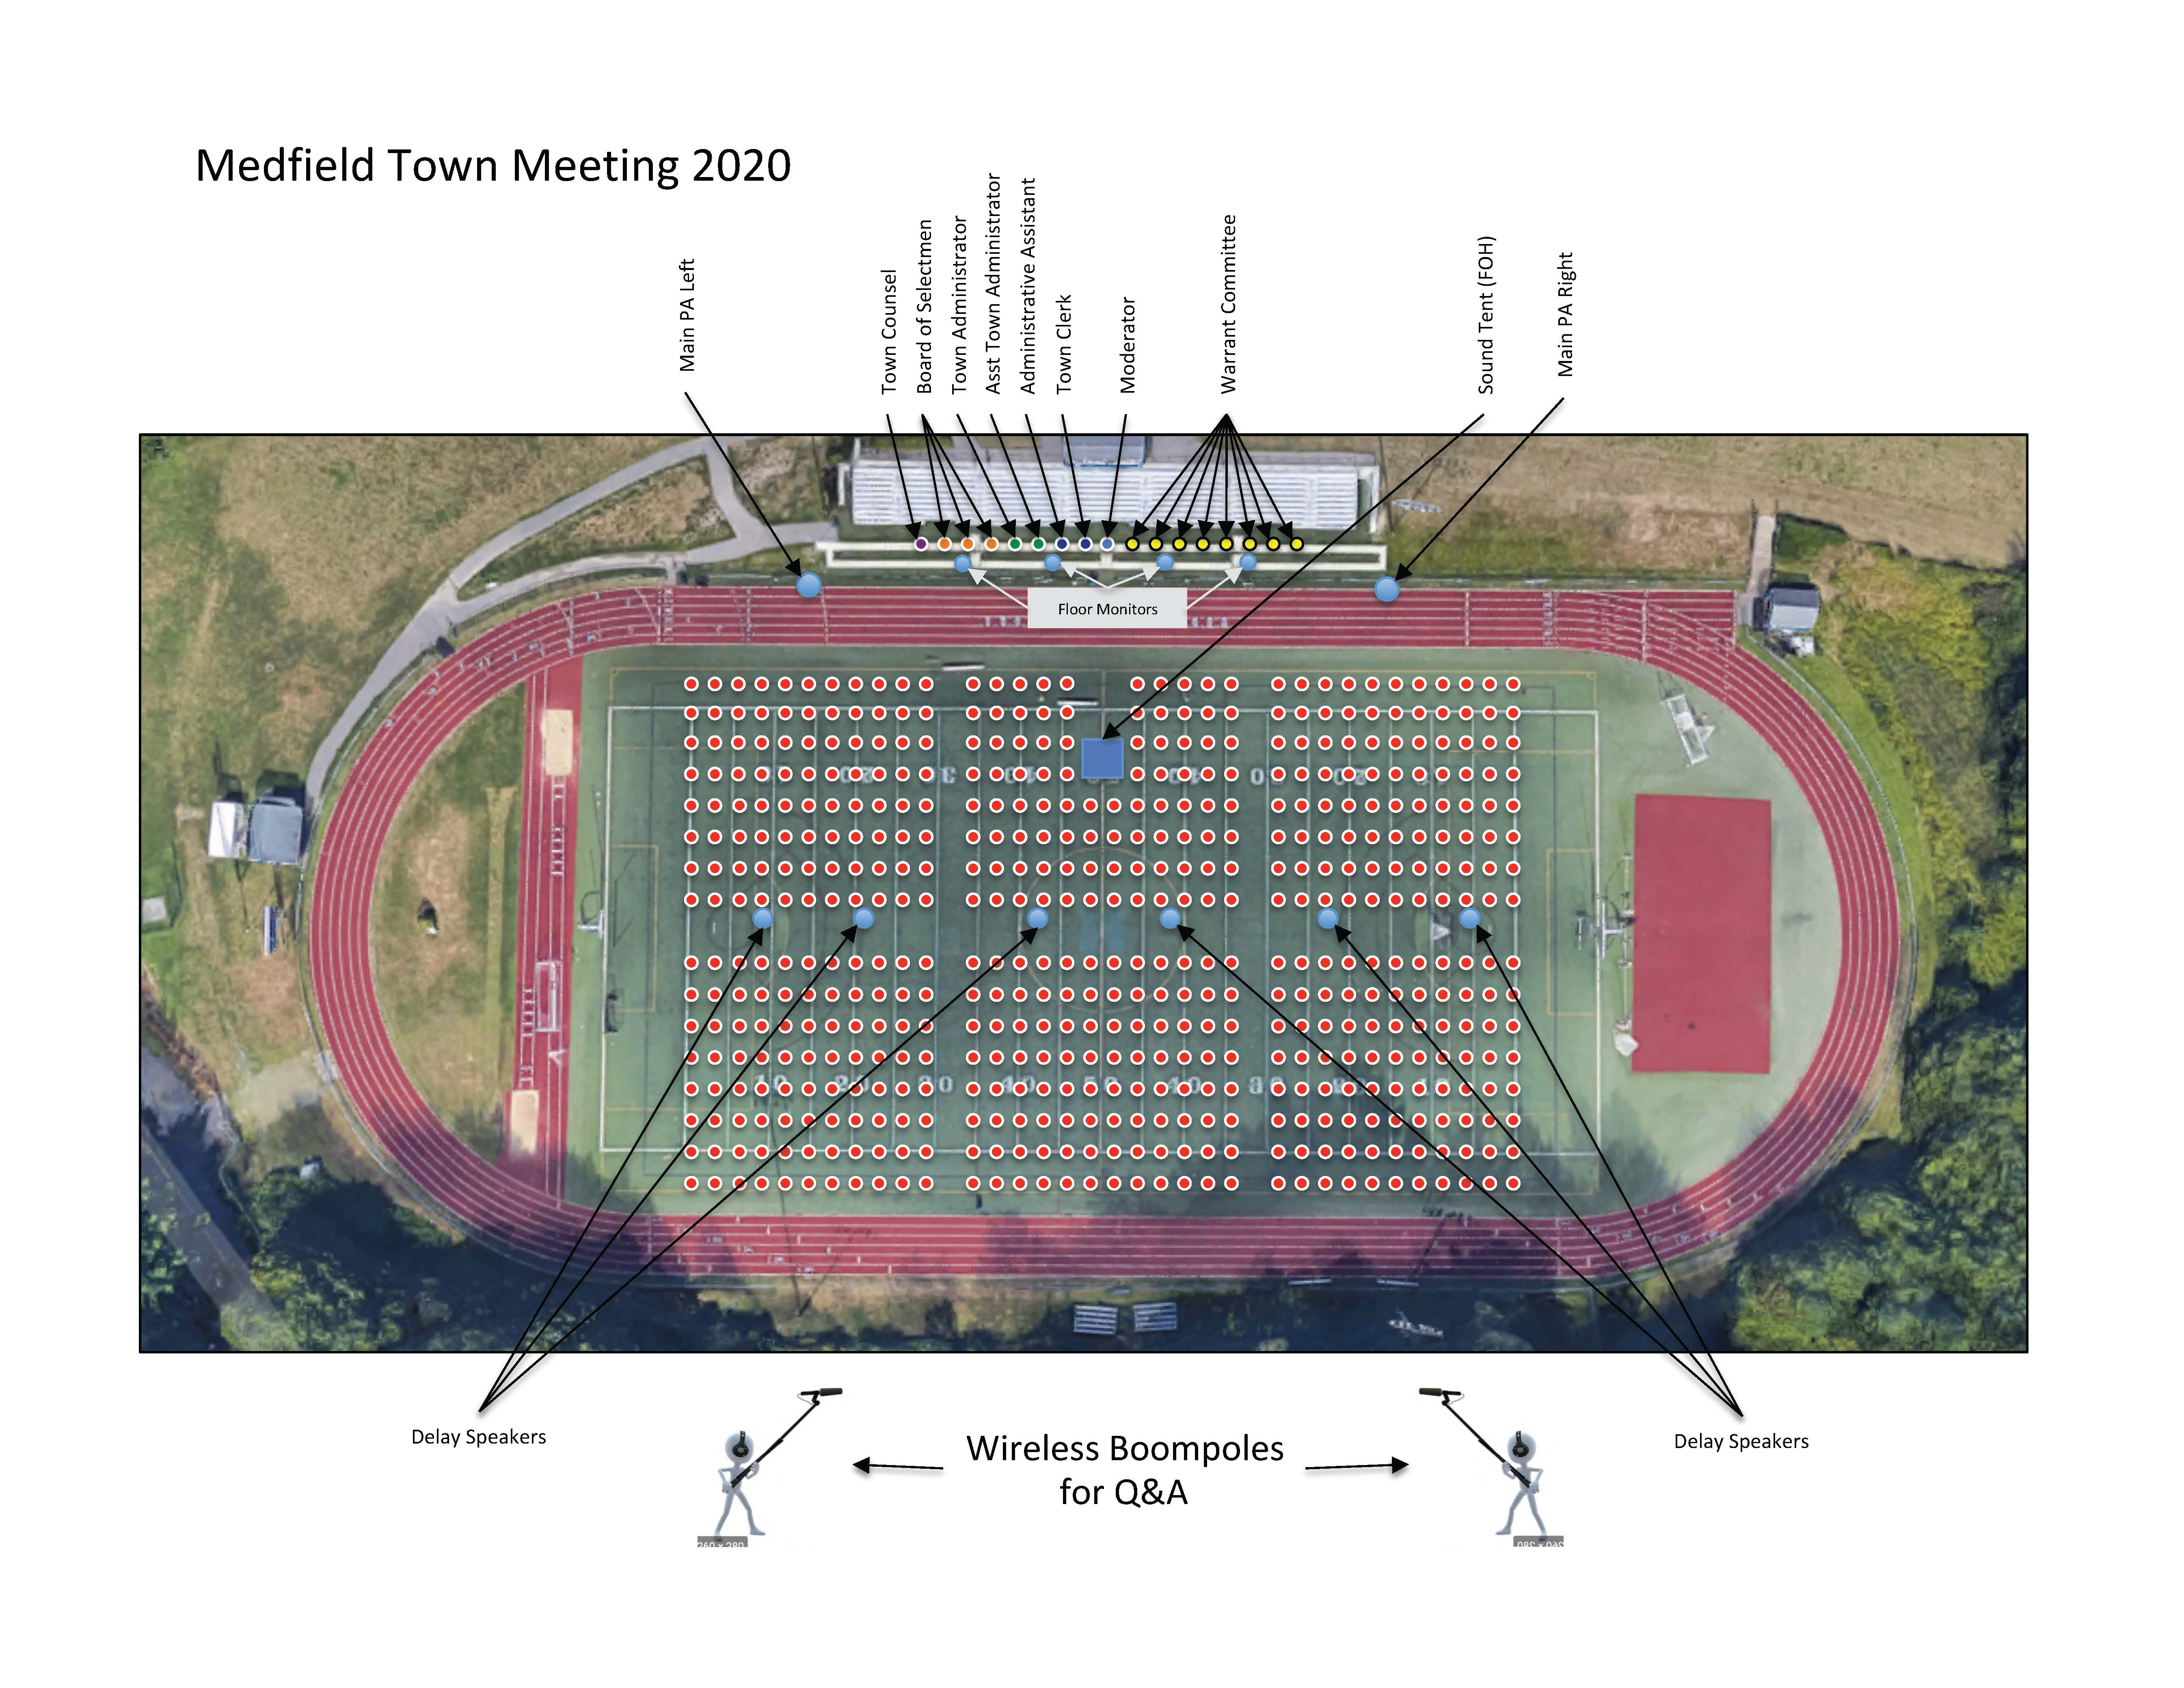 Town Meeting 2020 Field Layout